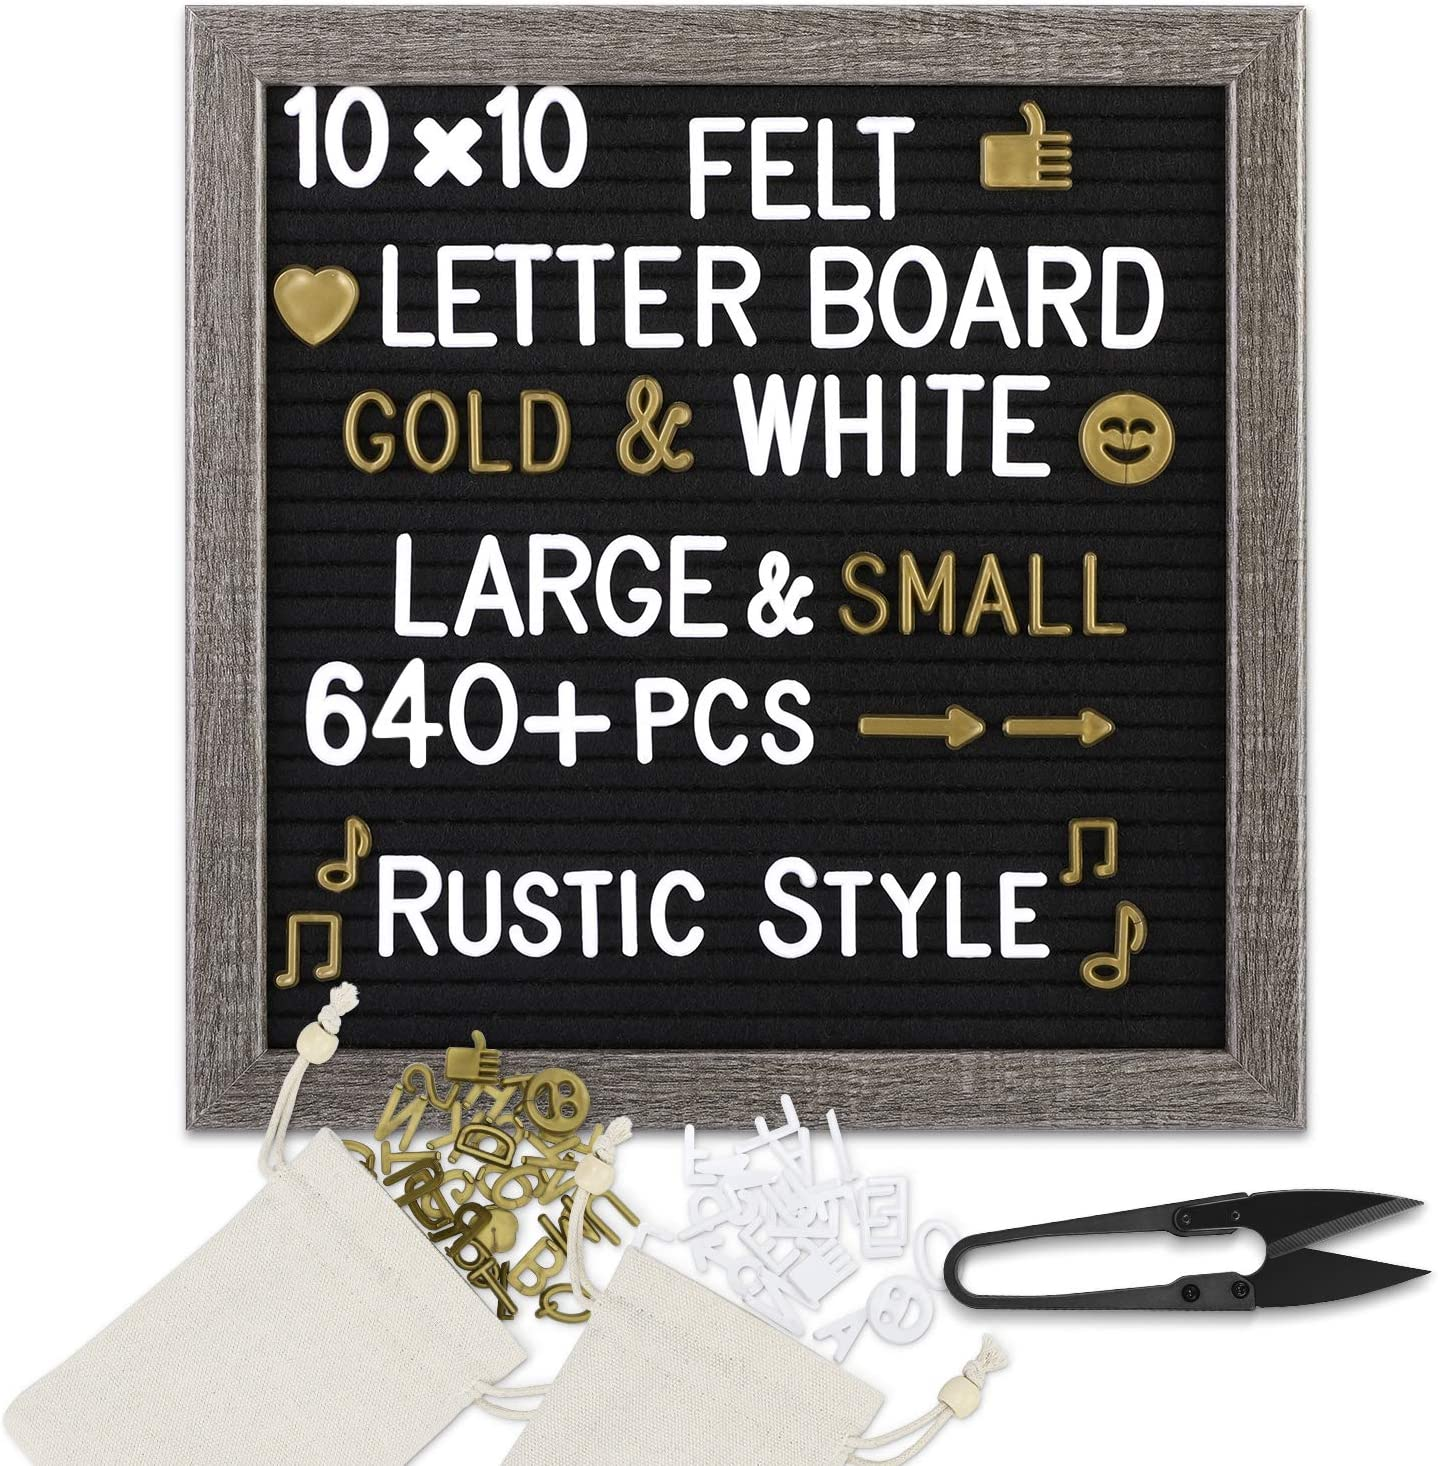 ONE WALL Black Felt Letter Board 10x10 Inch Changeable Message Sign Board Rustic Wood Frame /& Over 640 Precut Letters Symbols Emojis Scissors 2 Storage Pouches for Memo /& Message